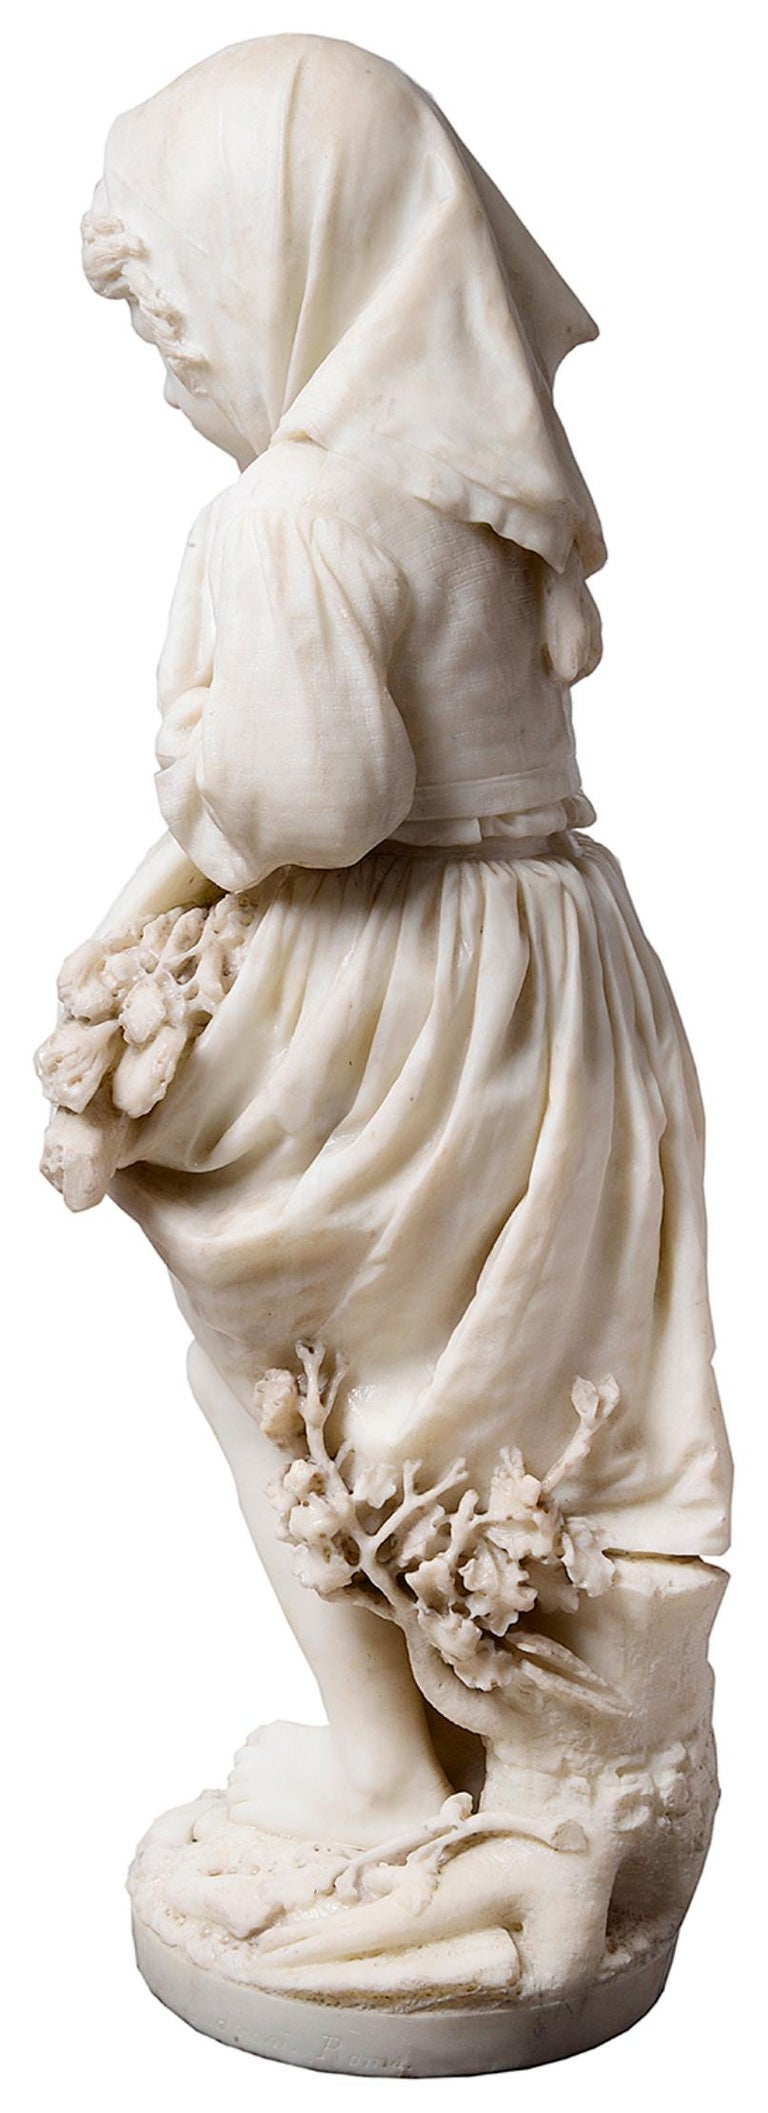 19th Century Italian Marble Statue of Gypsy Girl, by Prof. a. Cambi In Good Condition For Sale In Brighton, Sussex